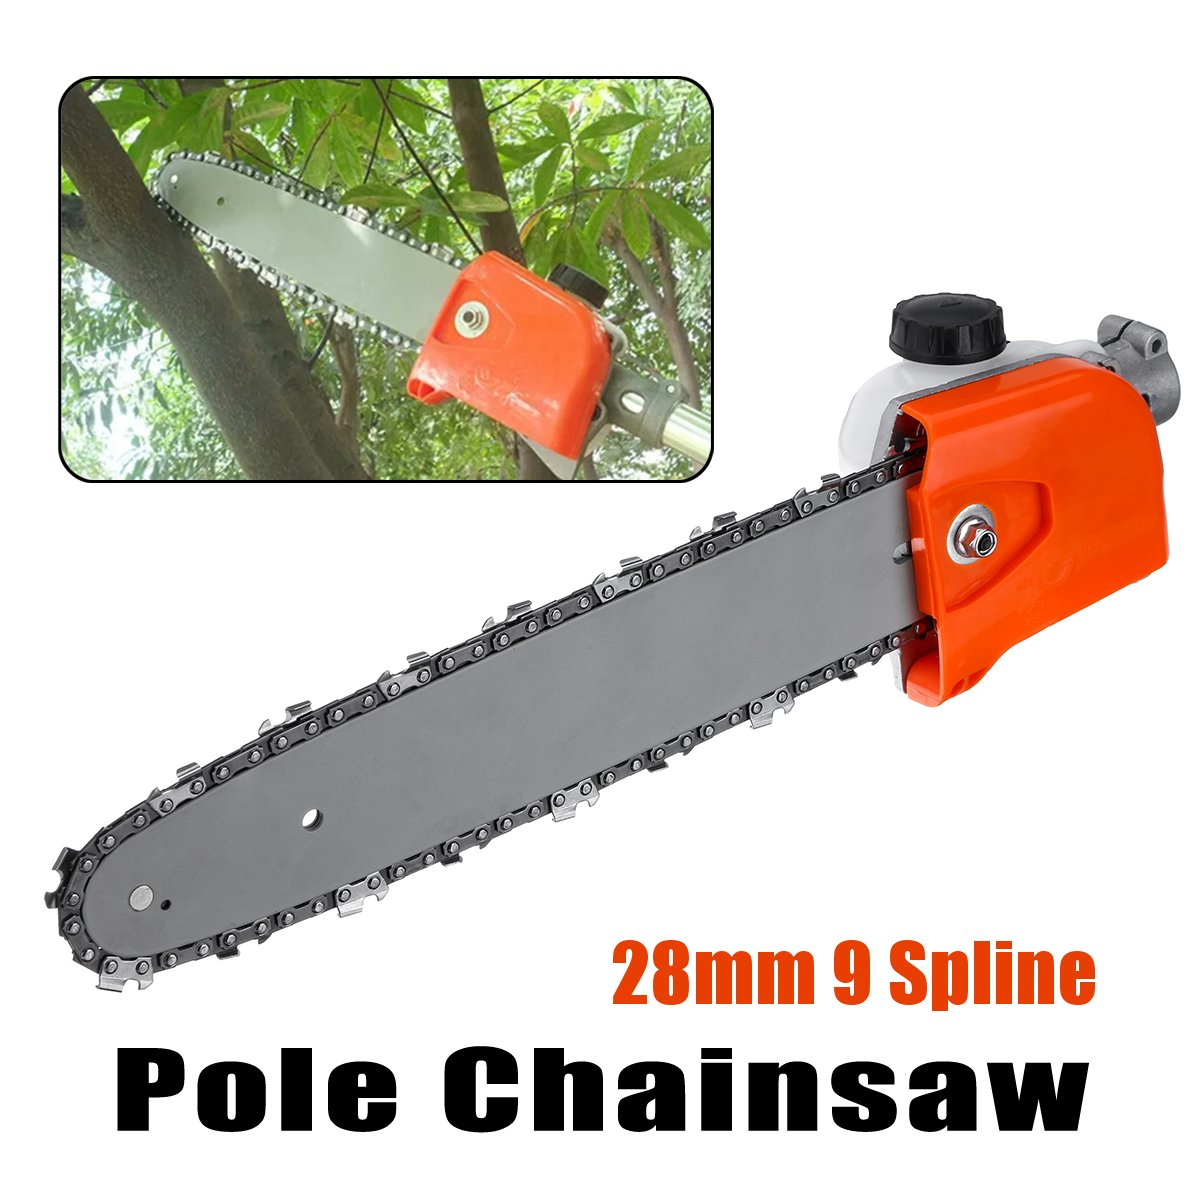 28mm 9 Spline Pole Chainsaw Saw Tree Cutter Tree Chainsaw Gearboxs Gear Head Tool +Chain+Guide Woodworking